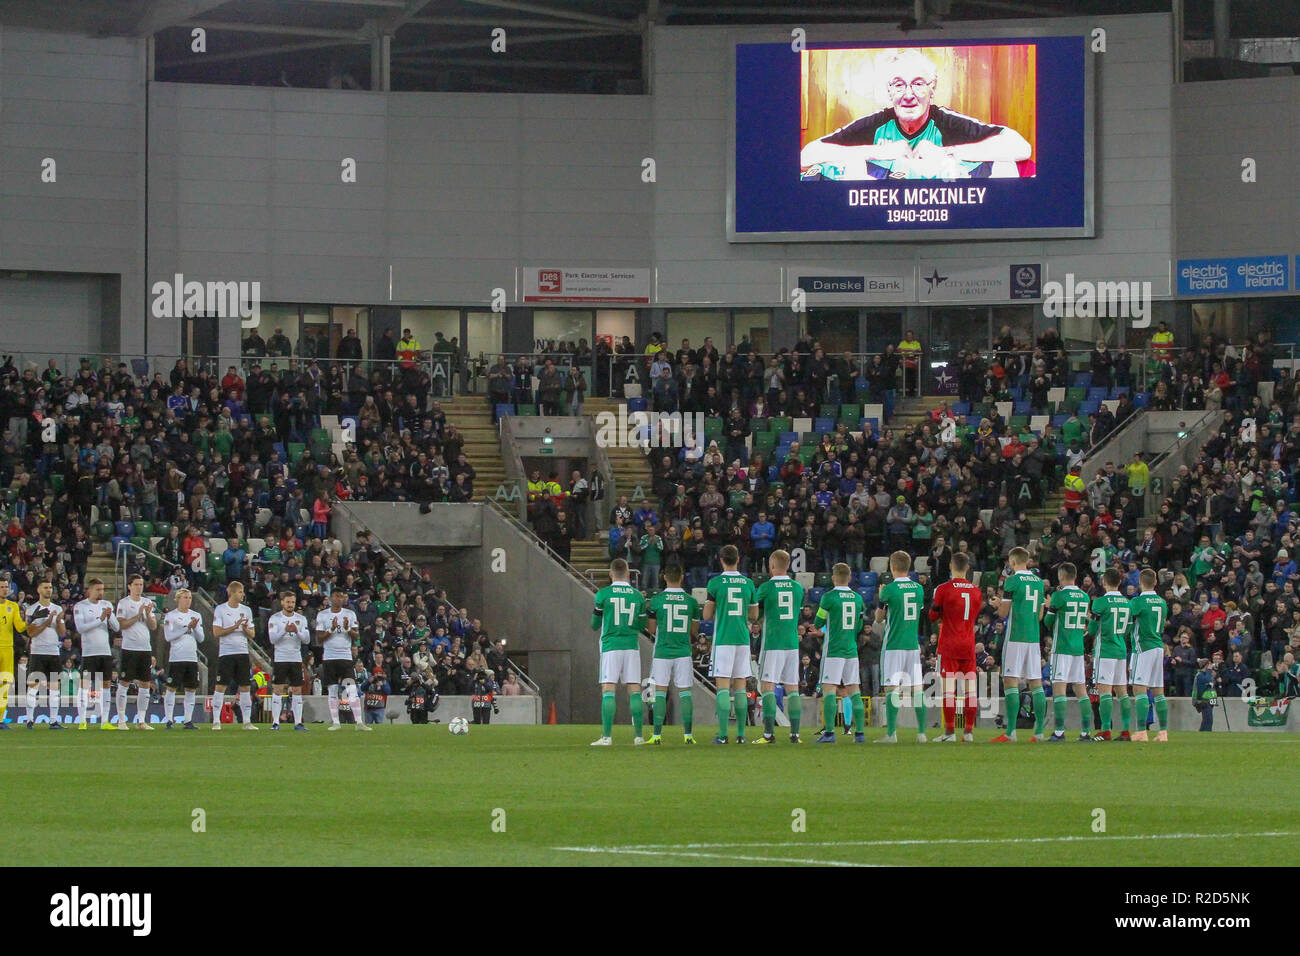 Windsor Park, Belfast, Northern Ireland. 18 November 2018. UEFA Nations League Group B3 - Northern Ireland (green) v Austria. Action from this evening's game. Both teams join in a minute's applause in memory of former Northern Ireland kitman Derek McKinley who died last week. Derek had been kitman for 230 games over 30 years and six managers. Credit: David Hunter/Alamy Live News. - Stock Image